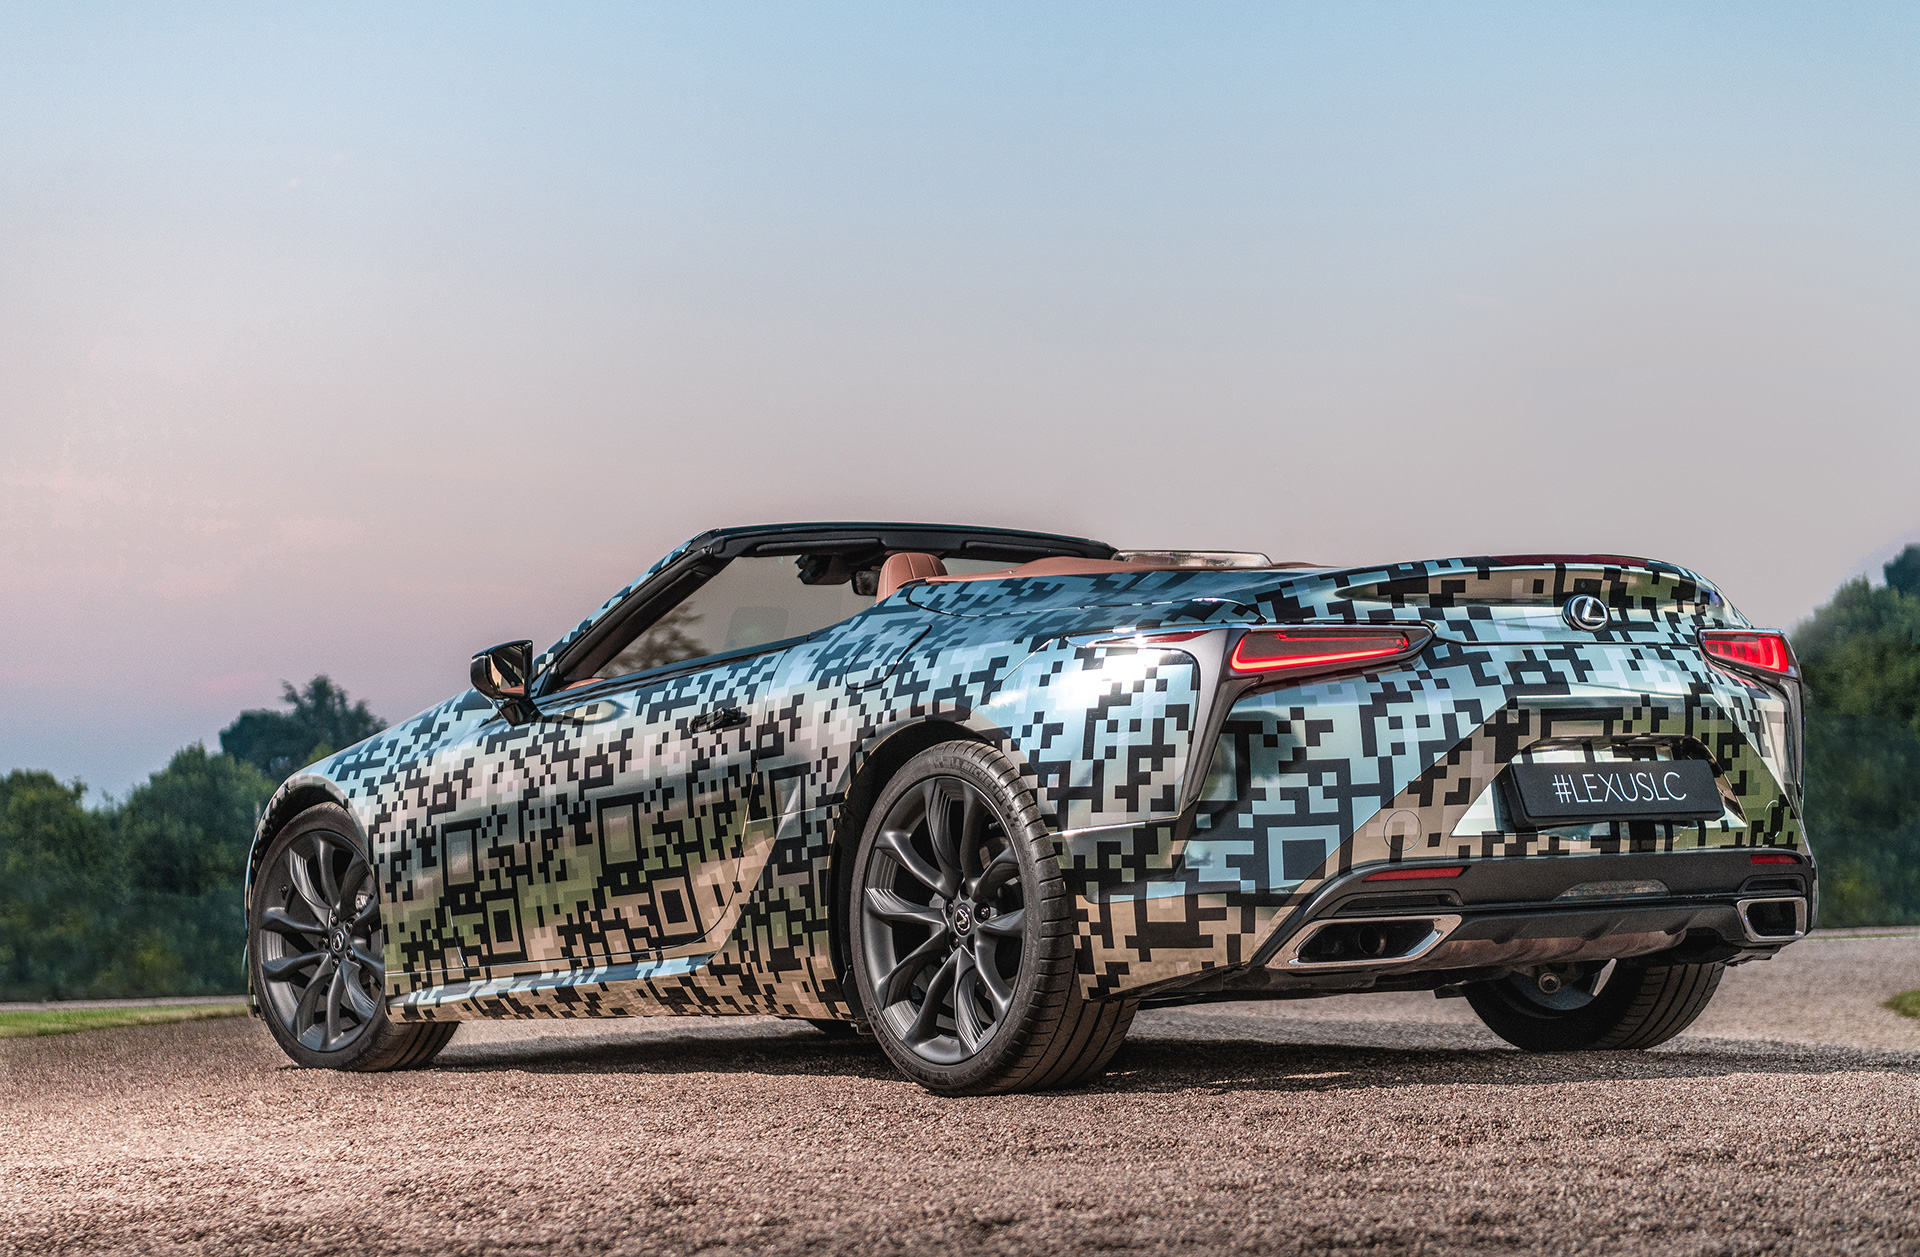 Lexus Unveils LC Convertible Prototype at Goodwood Festival of Speed - Image 2